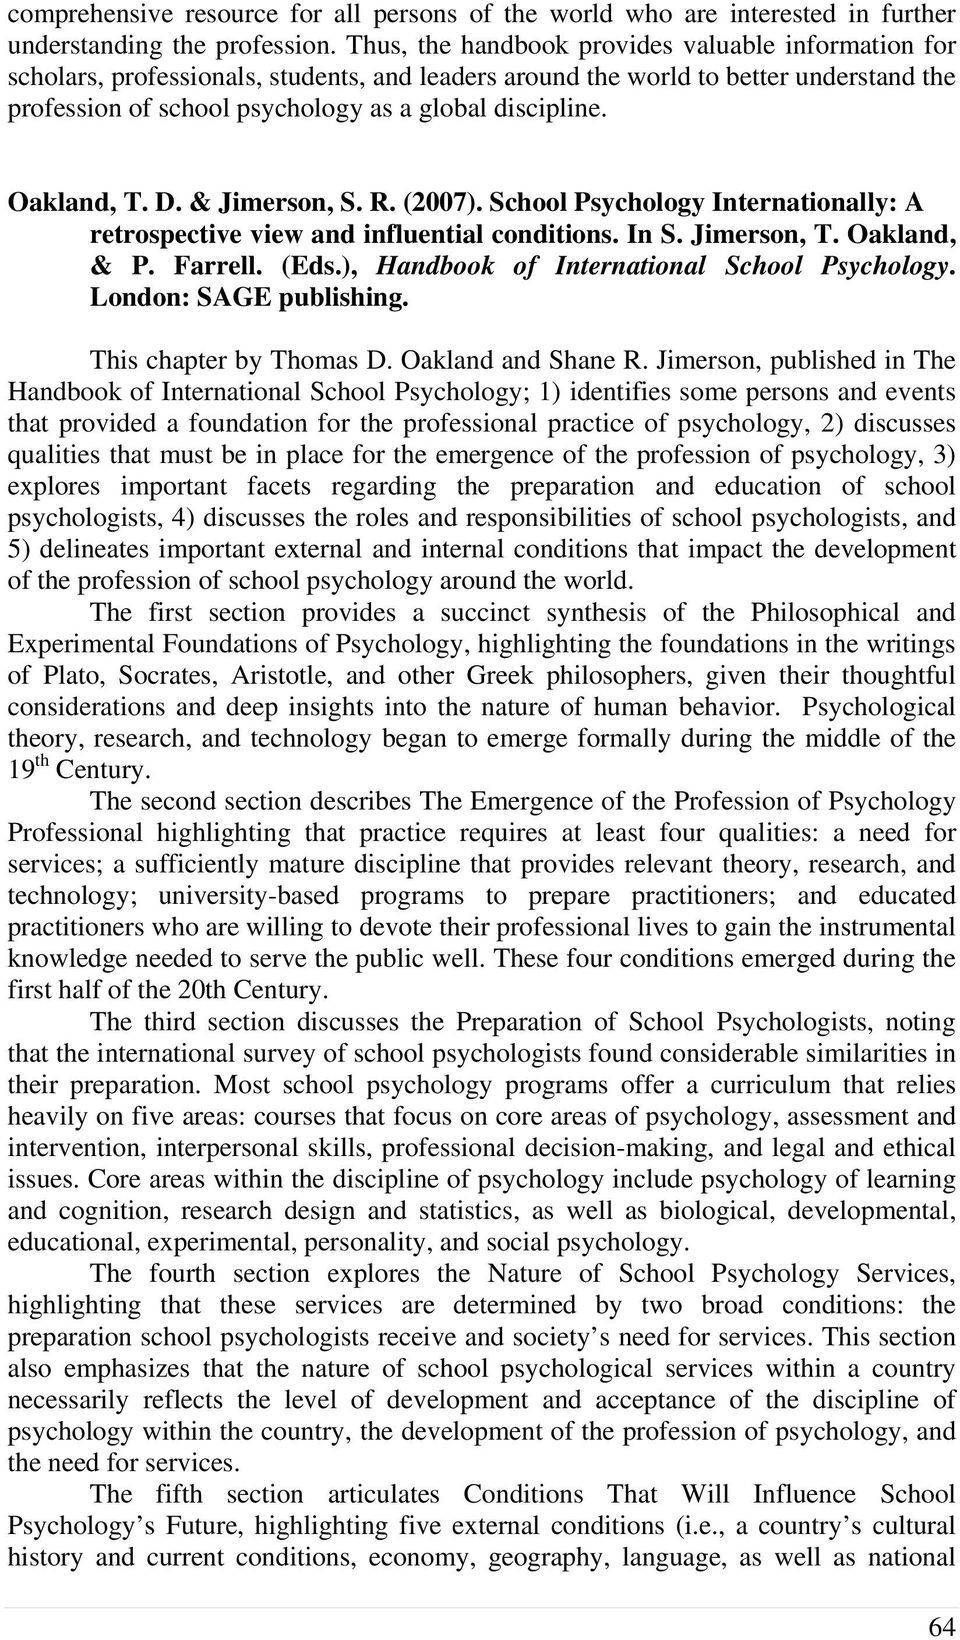 Oakland, T. D. & Jimerson, S. R. (2007). School Psychology Internationally: A retrospective view and influential conditions. In S. Jimerson, T. Oakland, & P. Farrell. (Eds.